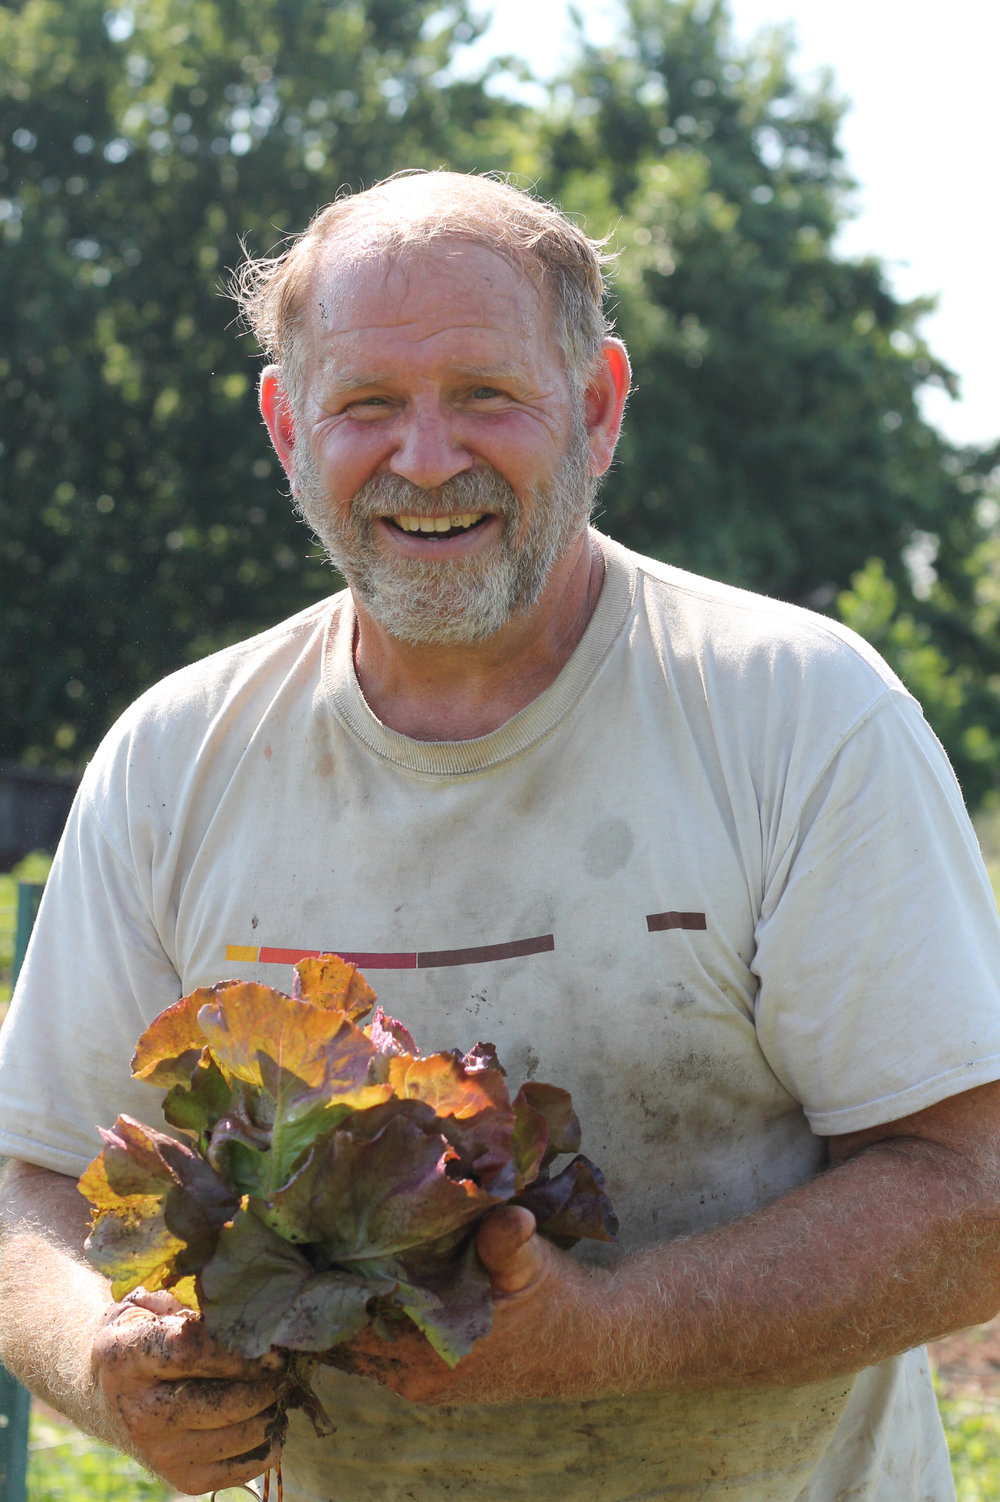 Andy  - Andy started Amberland Farm in 2007 in his backyard in Upper Southampton, Bucks County, Pennsylvania.  He was a vendor at the Wrightstown Farmers Market for 5 years.  His growing space now includes the community gardens at Bryn Athyn College and hoop houses at Russell Gardens Wholesale.  As a 1979 graduate of Delaware Valley College (now university) with a BS degree in Ornamental Horticulture, farming and gardening come naturally.  Andy's passion for growing local nutrient dense produce is rooted in education and lifelong learning.